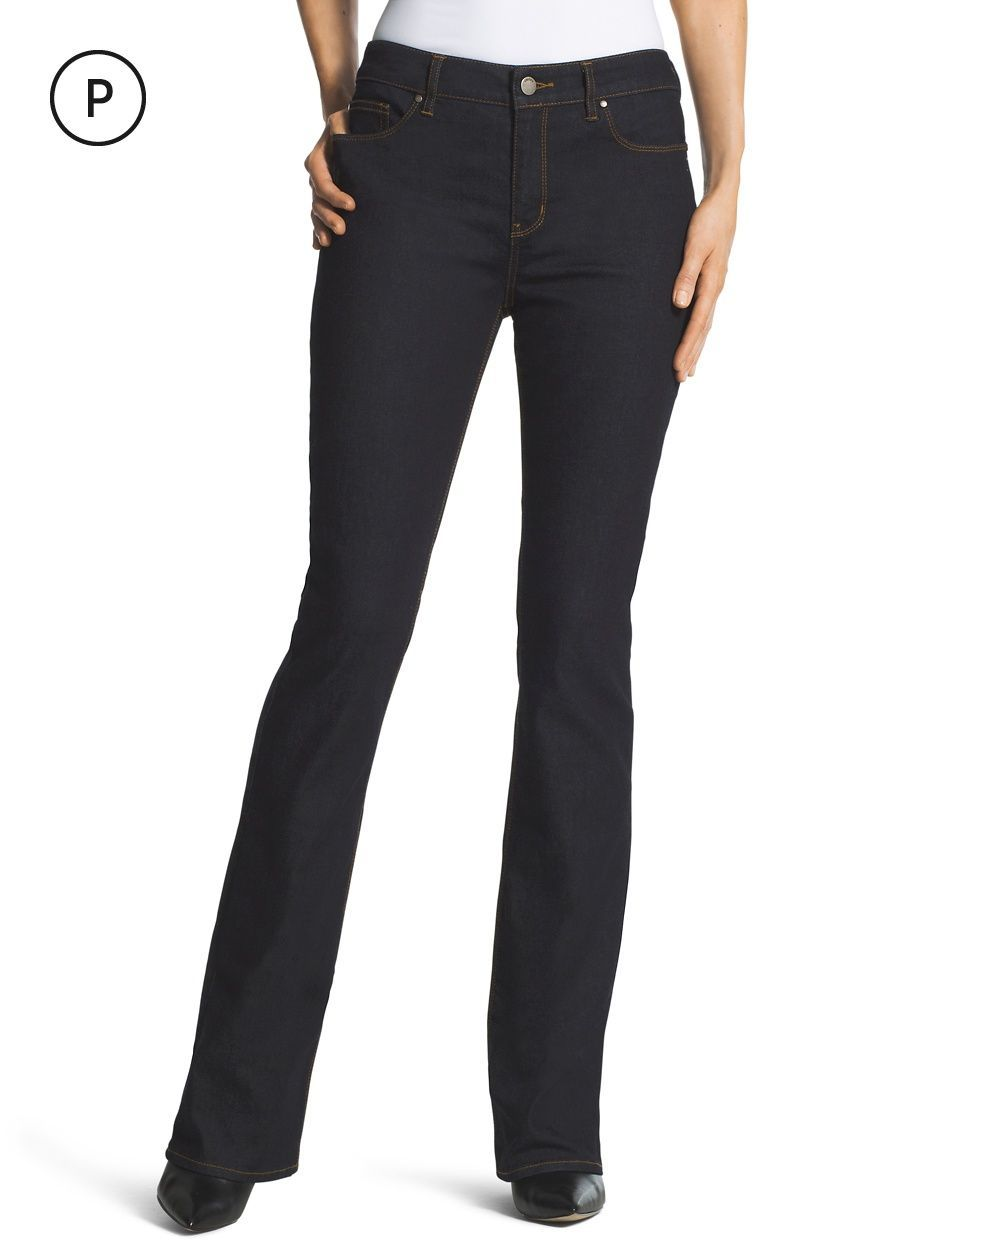 0213ef4eba3 Chico's Women's Petite Platinum Barely Bootcut Jeans, Tampa Rinse, Size:  00P (2P - XS)